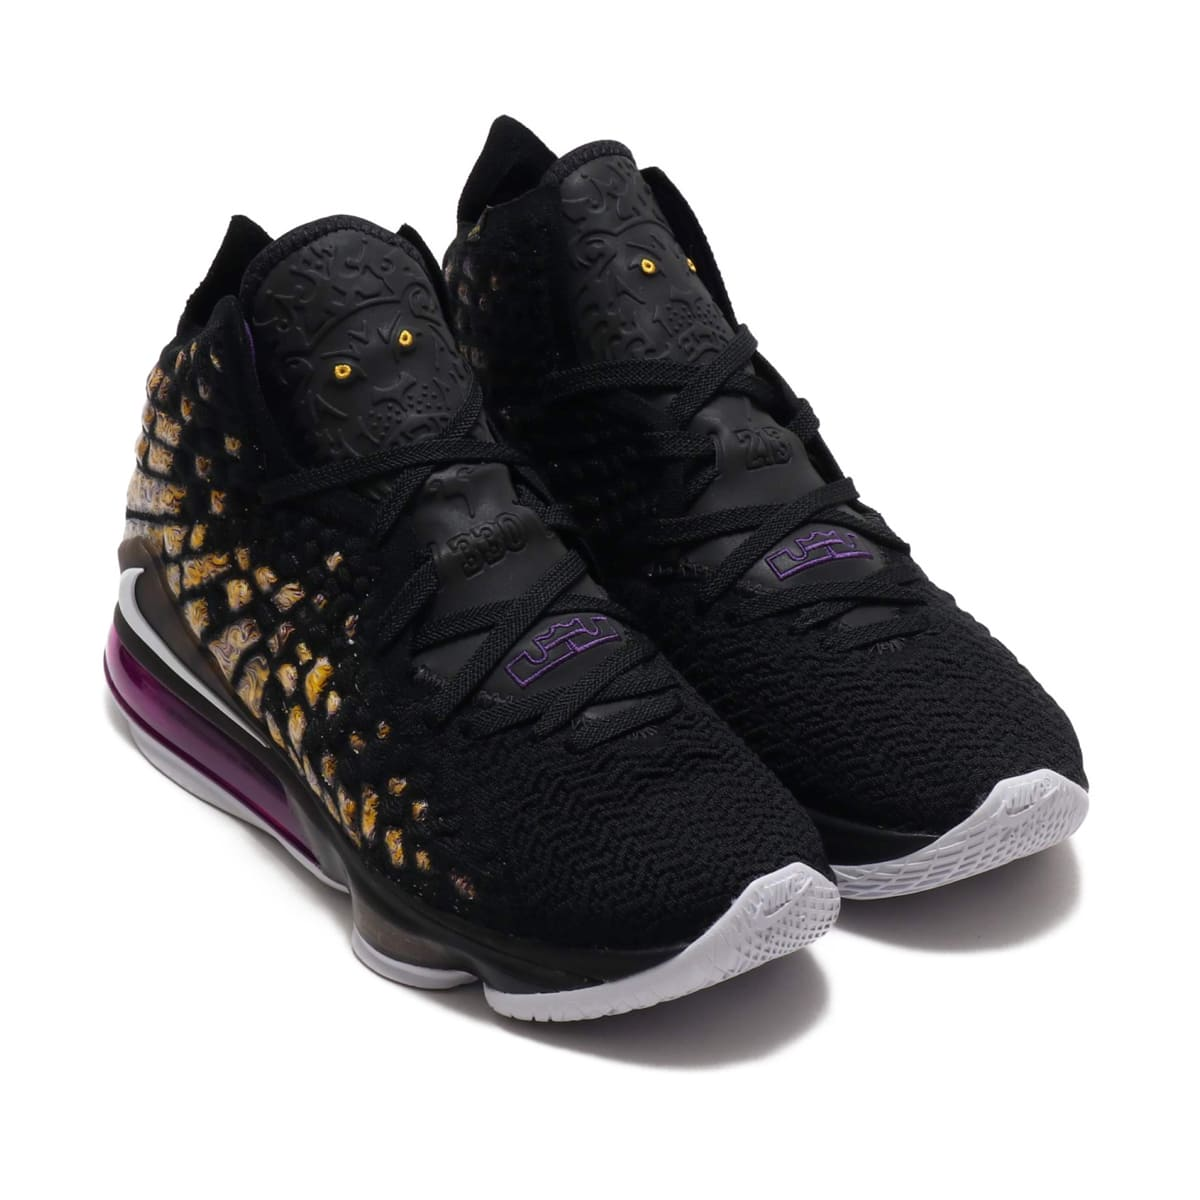 NIKE LEBRON XVII BLACK/WHITE-EGGPLANT-AMARILLO 19HO-S_photo_large